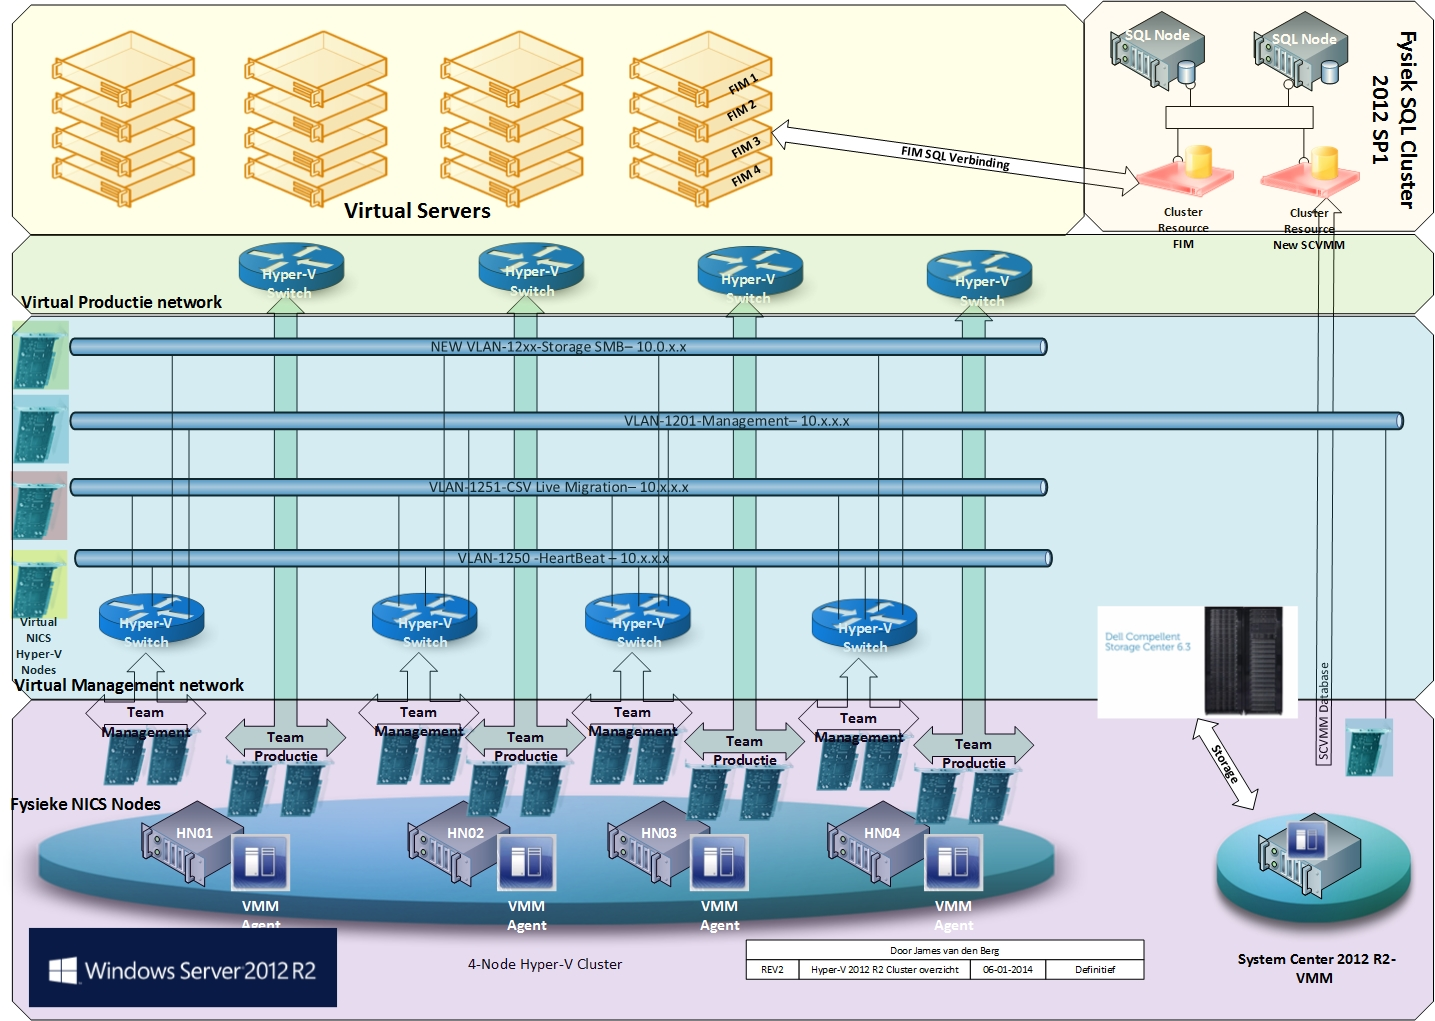 Vlan tagging in system center 2012 r2 virtual machine for Virtual decorating